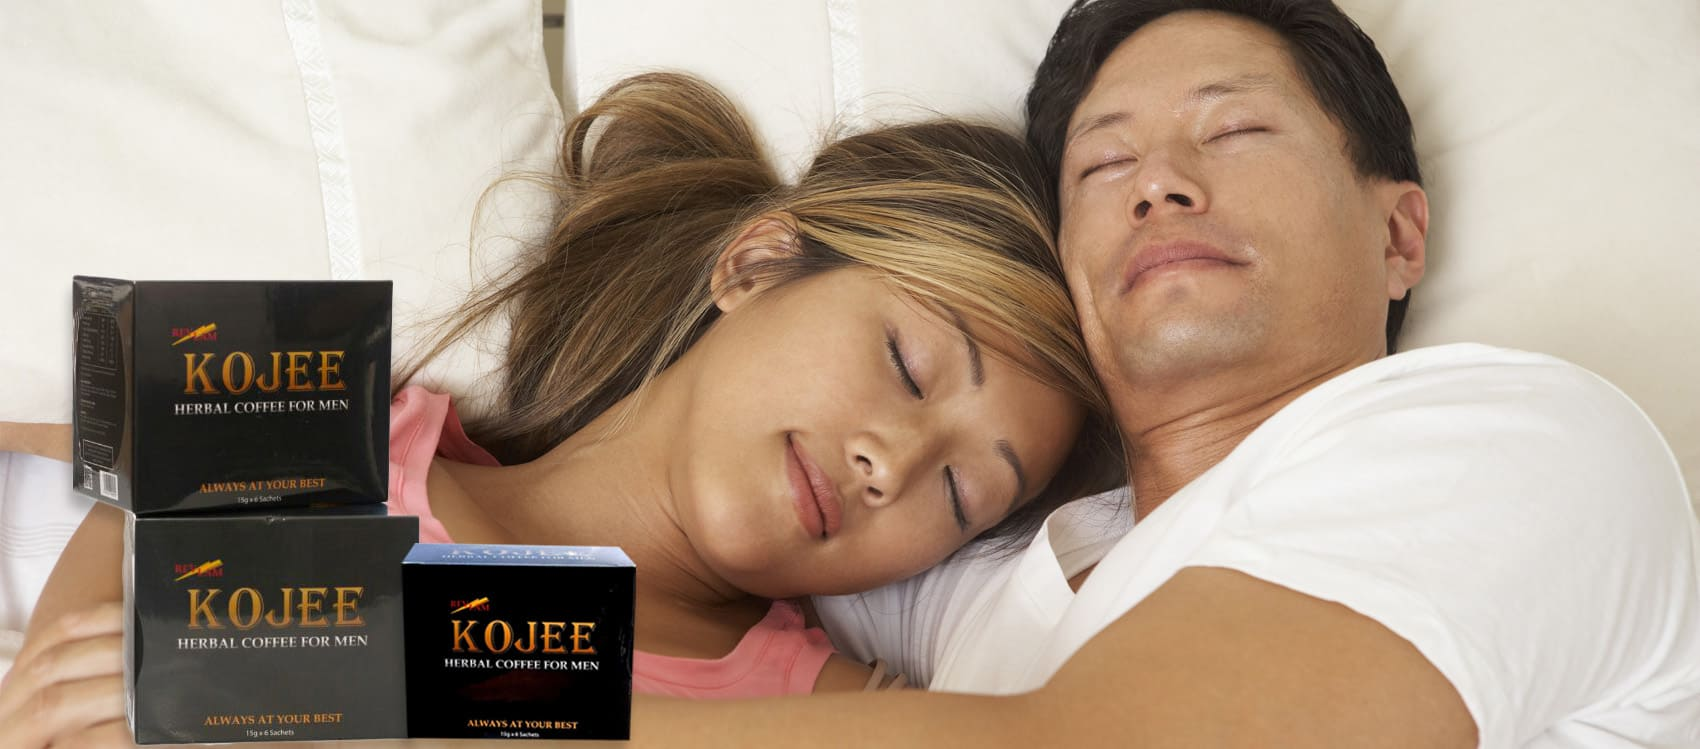 KOJEE Herbal Coffee for Men